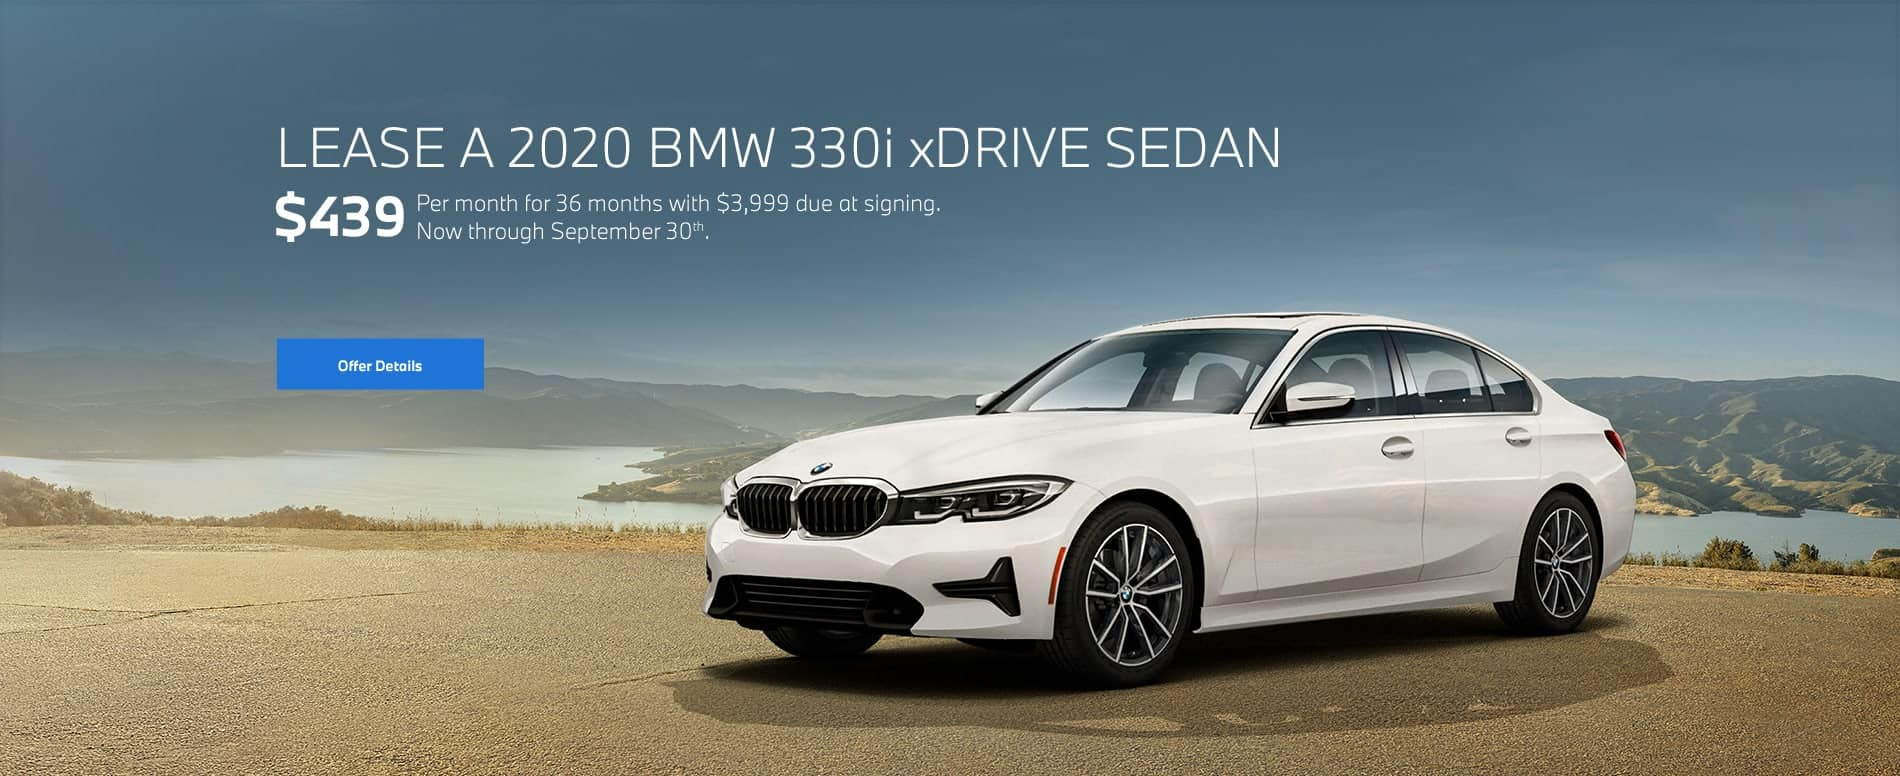 2020 BMW 330i xDrive Sedan for $439/mo